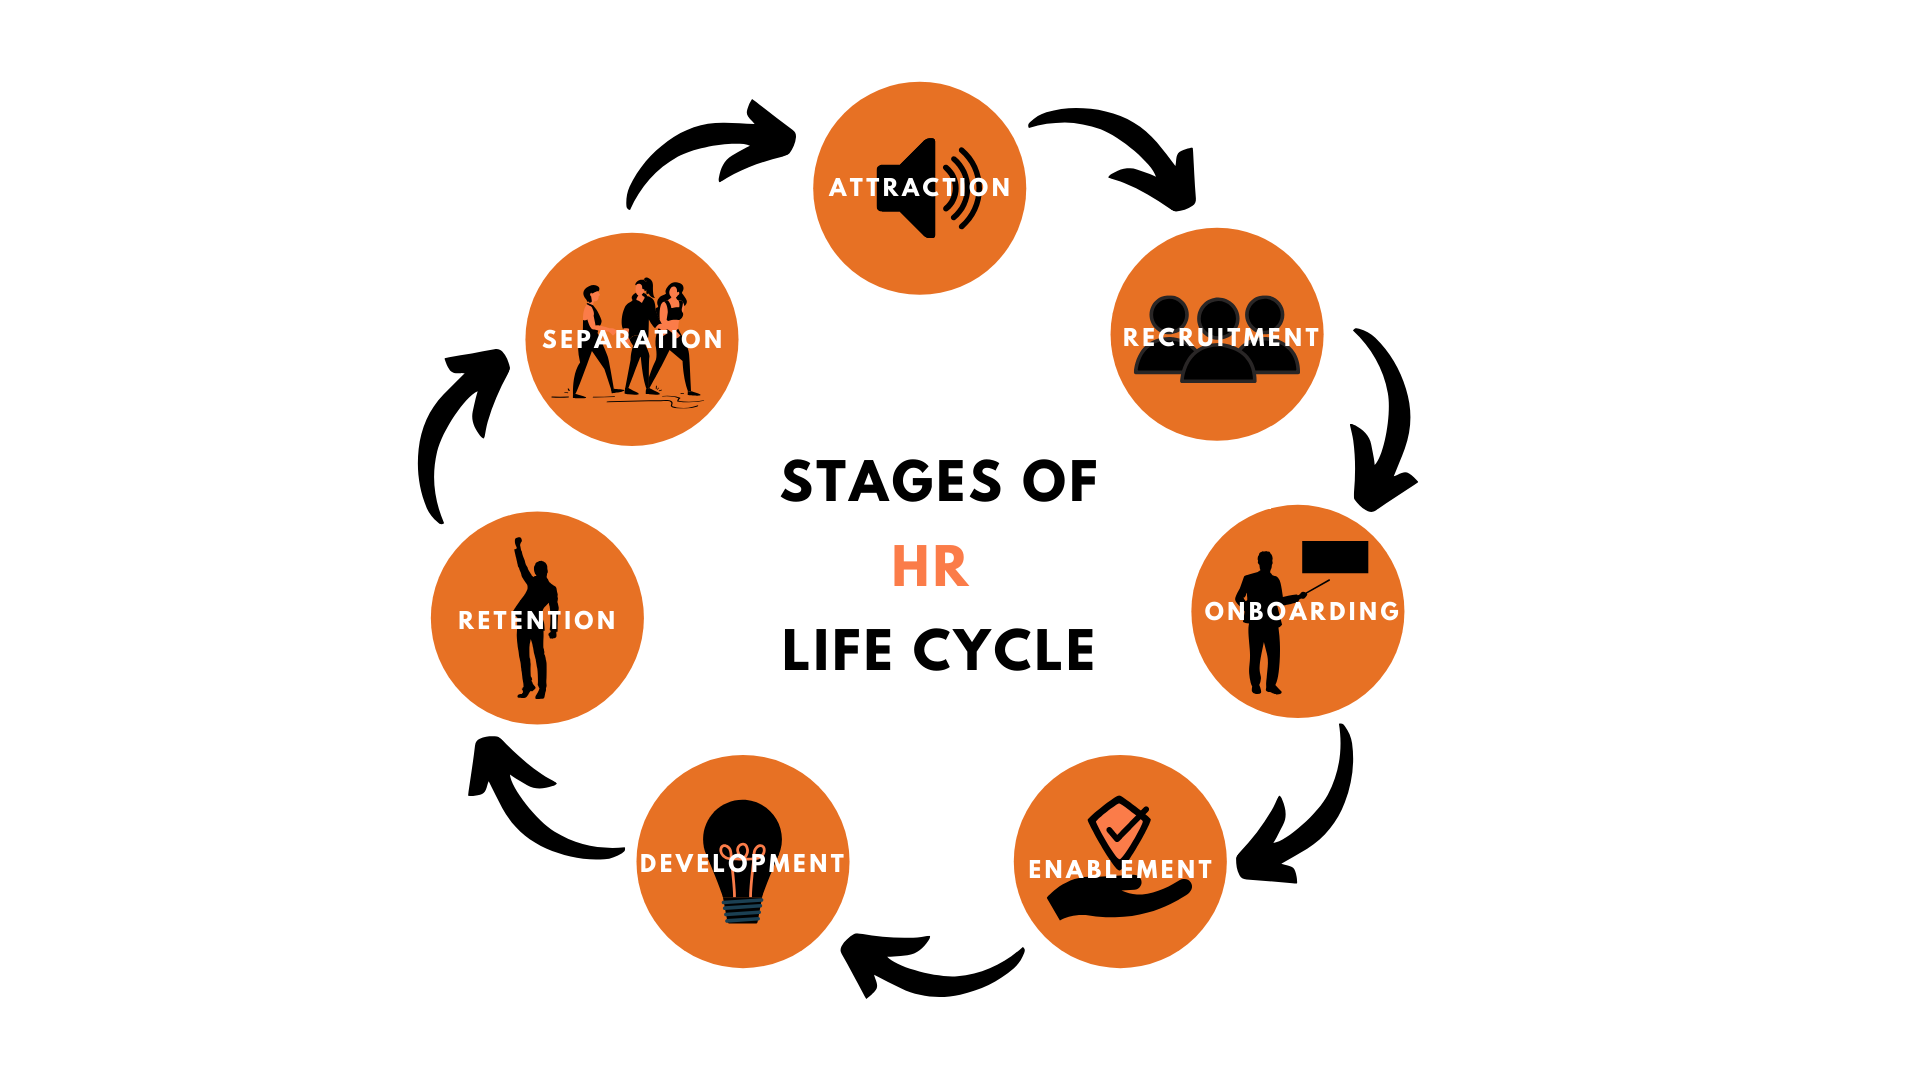 Stages of Human Resource Lifecycle - HR Digital Transforamtion